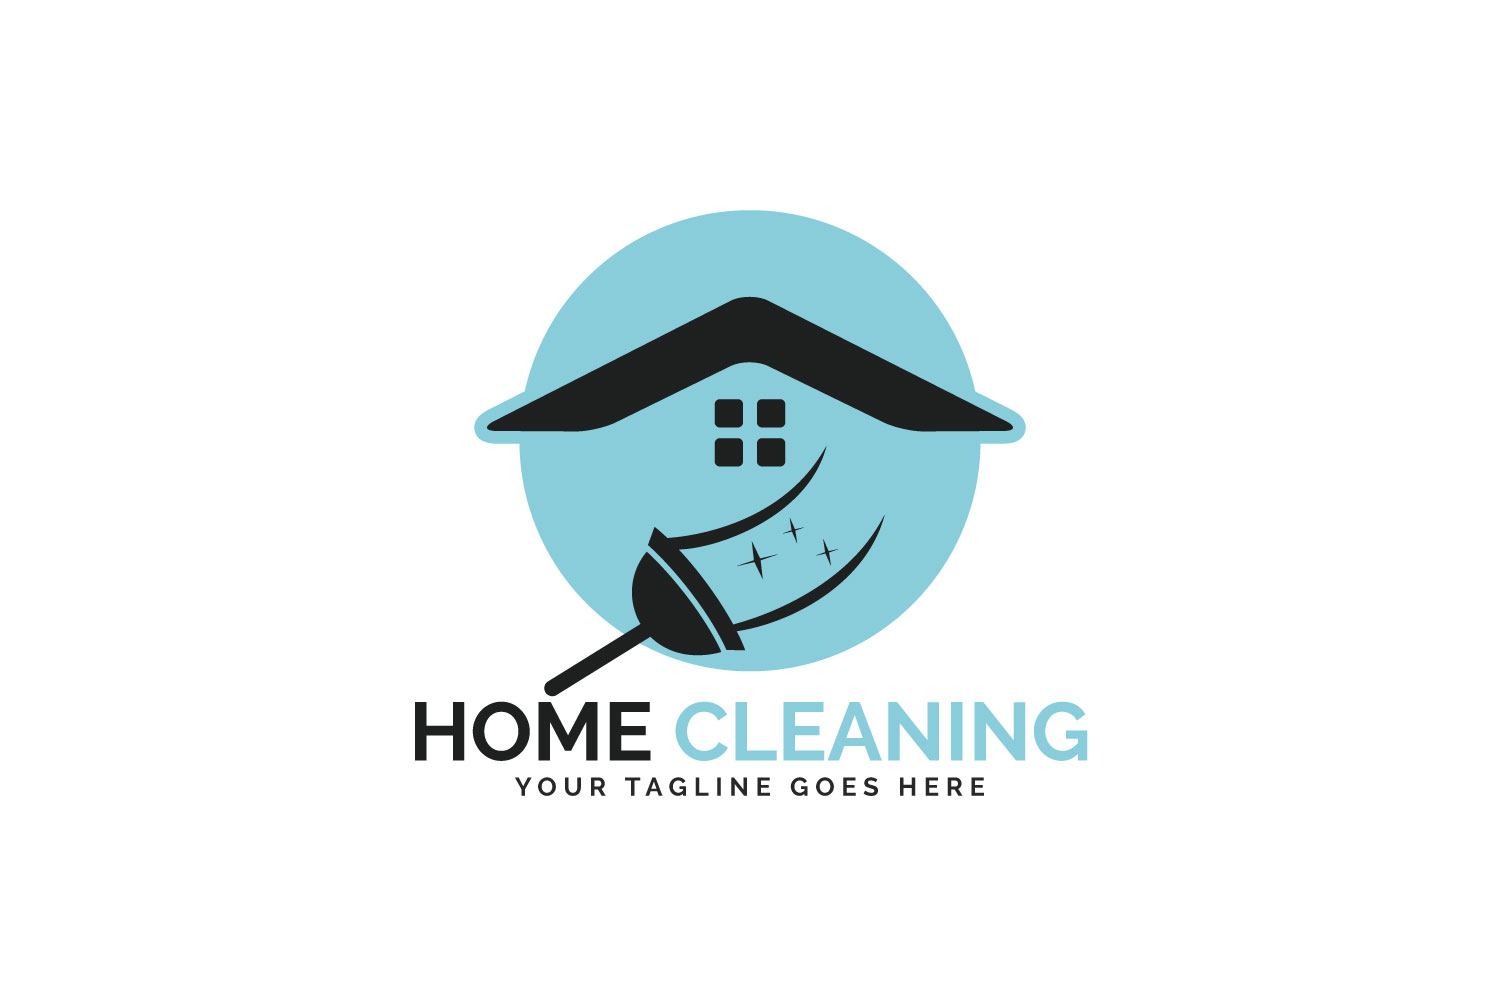 Home Cleaning Vector Logo Design. example image 1